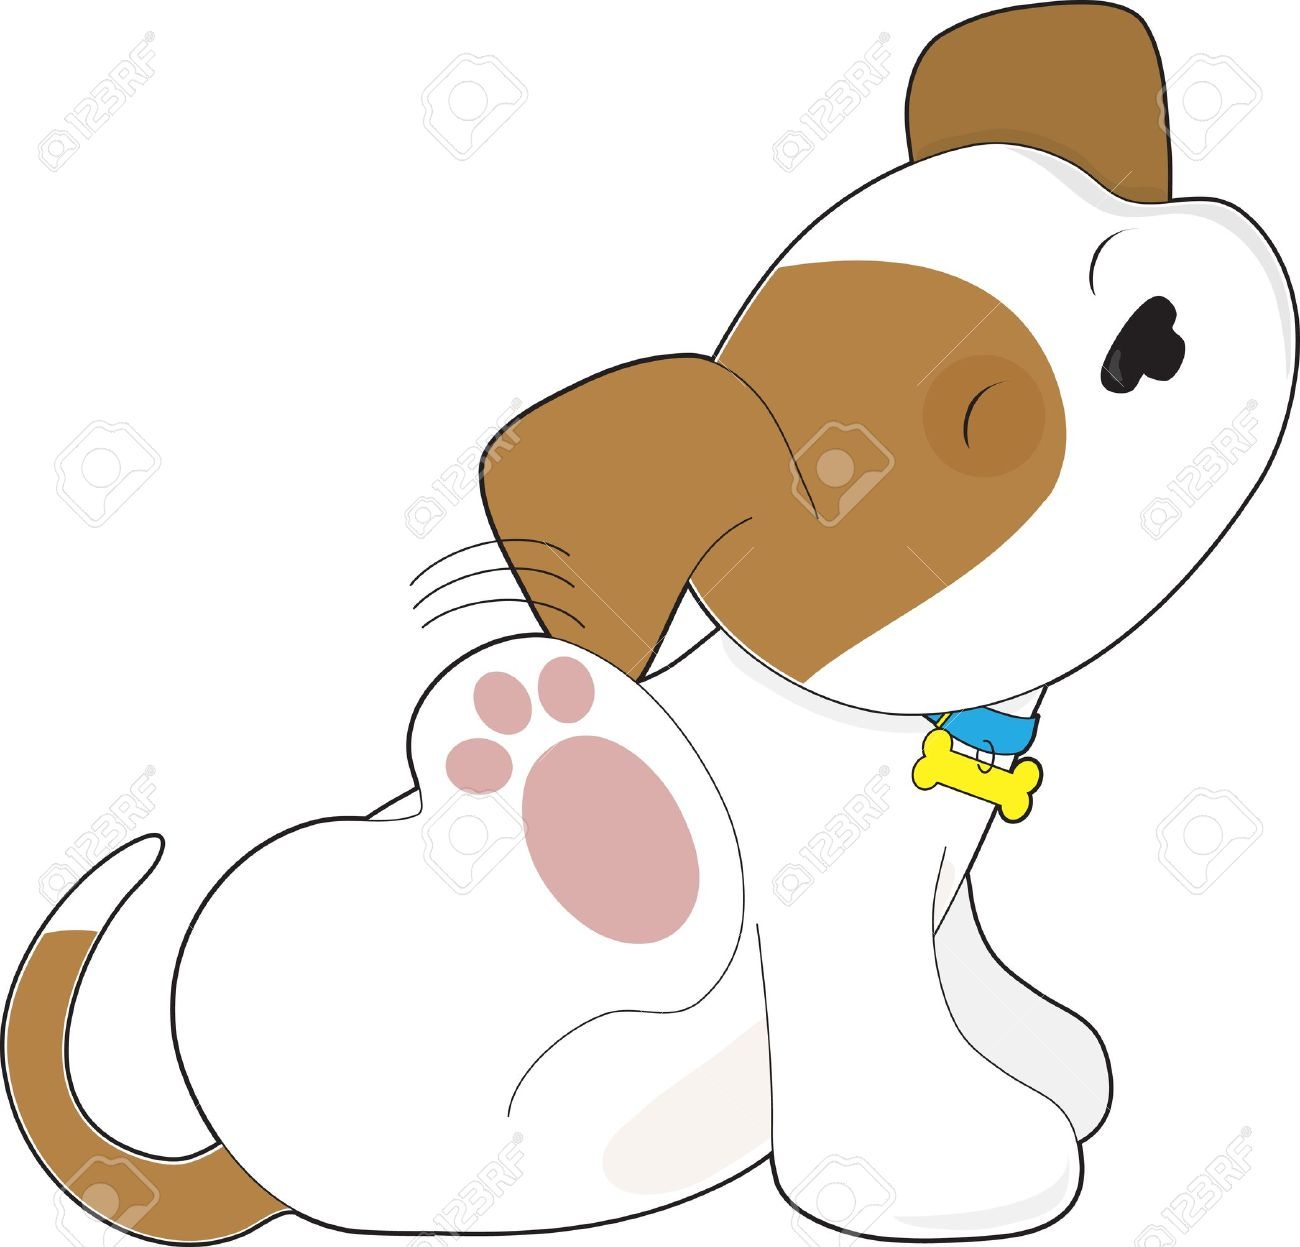 Puppy vs dog clipart graphic transparent download A Cute Brown And White Puppy Is Scratching Its Ear. Royalty Free ... graphic transparent download